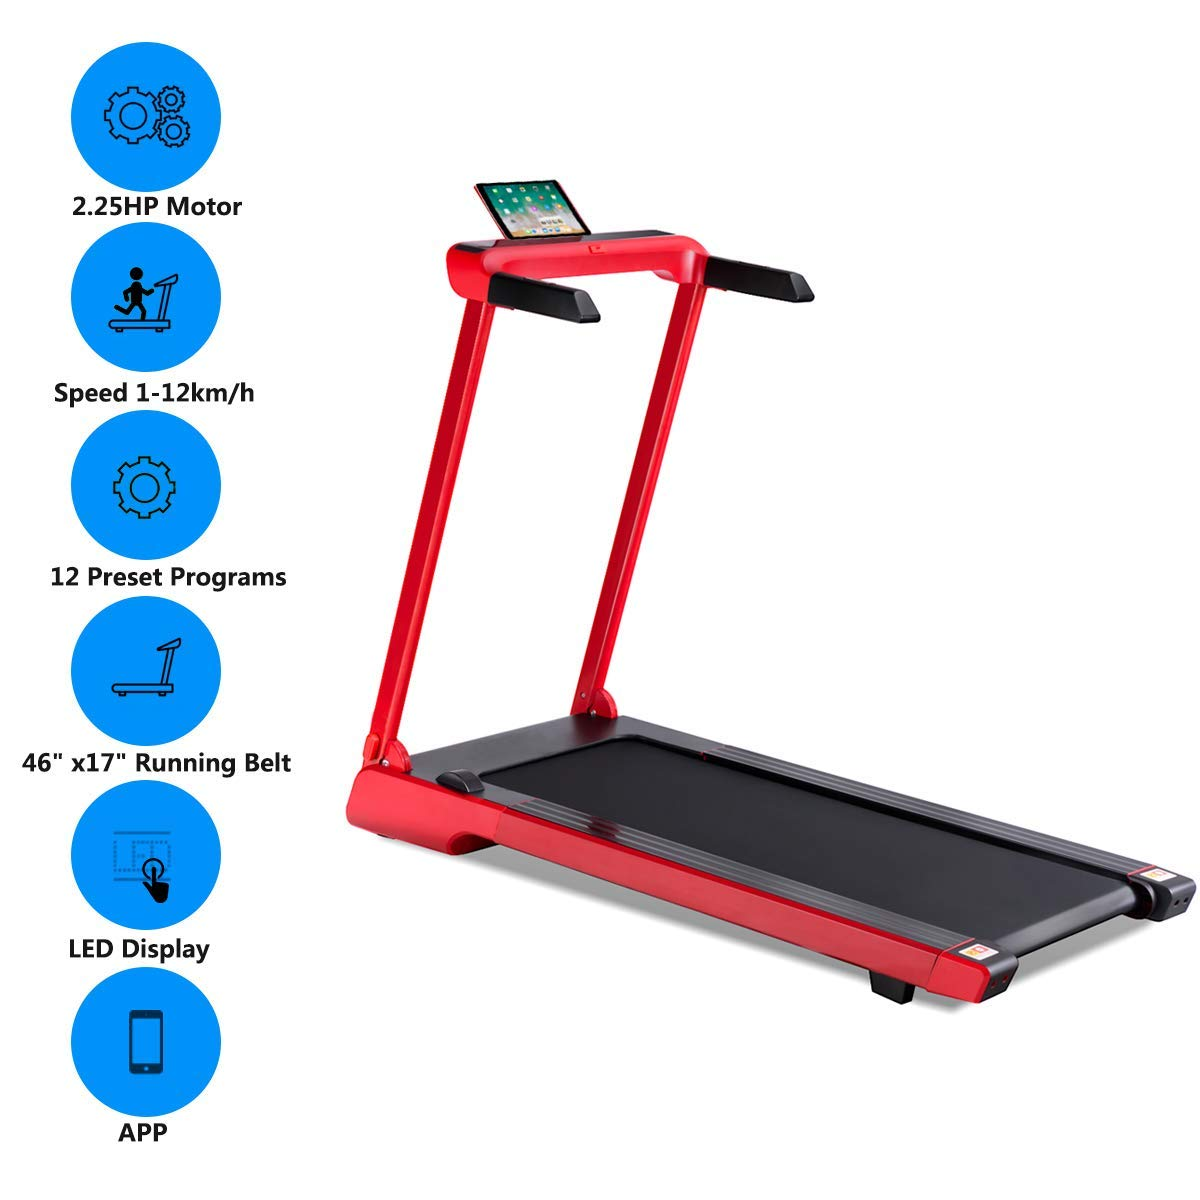 Goplus 2.25 HP Folding Treadmill Electric Cardio Fitness Jogging Running Machine Portable Motorized Power Slim Treadmill with Sports App and LED Display (Red) by Goplus (Image #4)